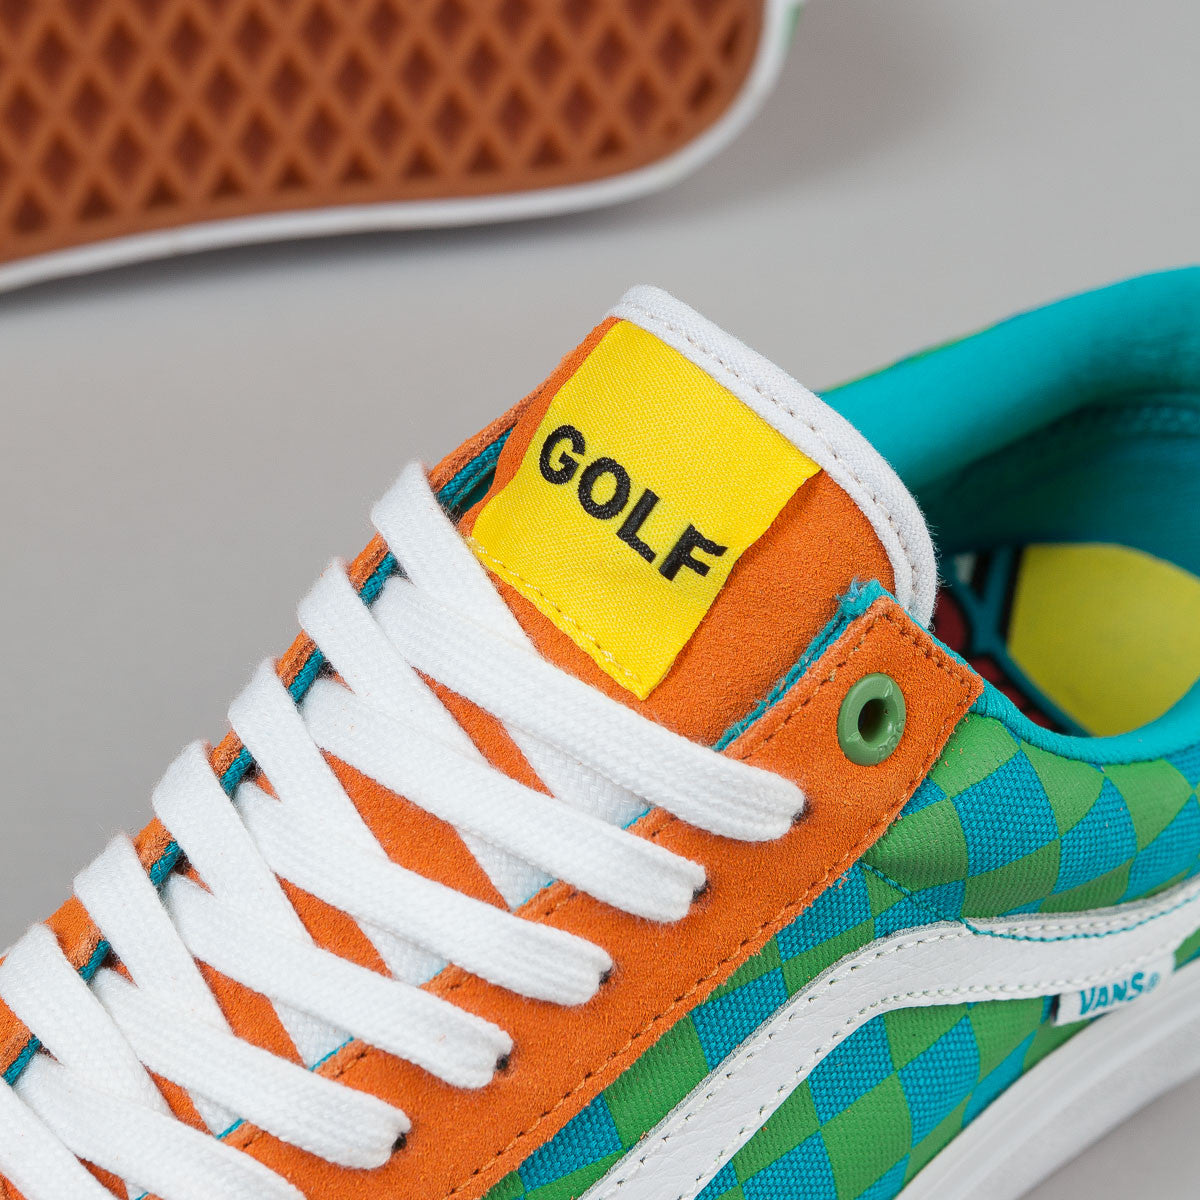 Vans Old Skool Pro Shoes (Golf Wang) - Orange / Blue / Green